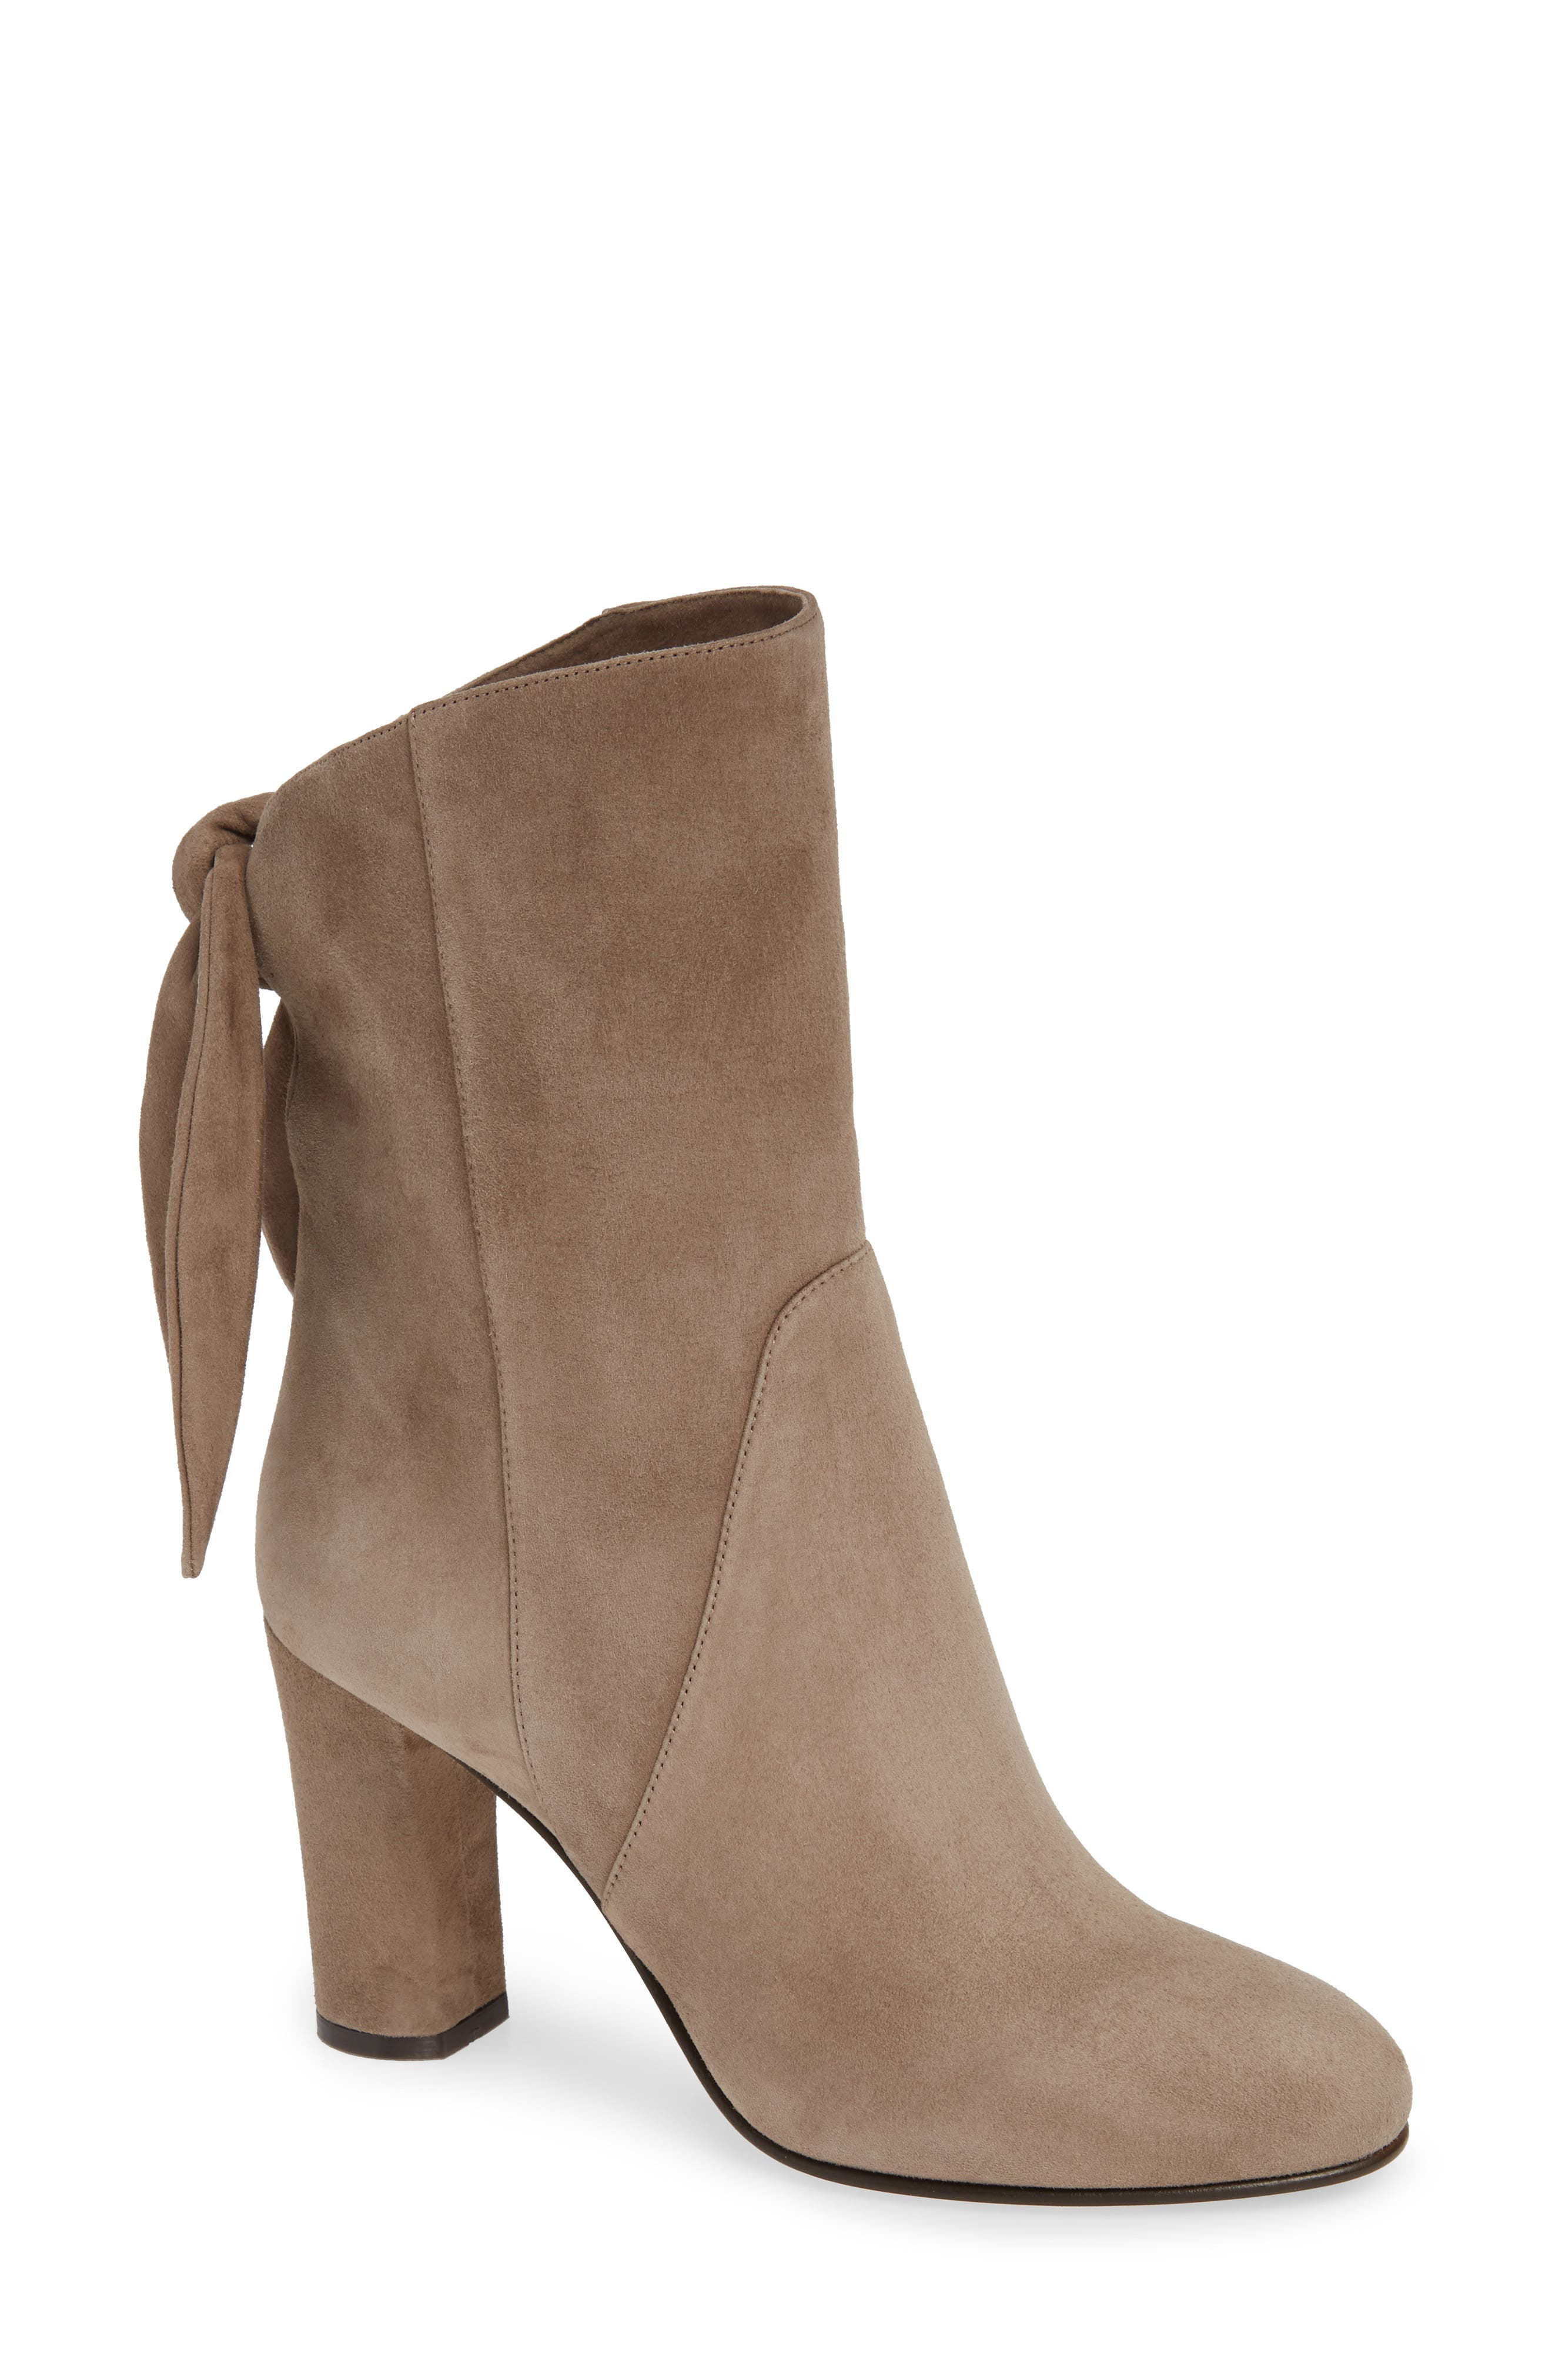 Malene Knotted Bootie,                             Main thumbnail 1, color,                             STONE SUEDE